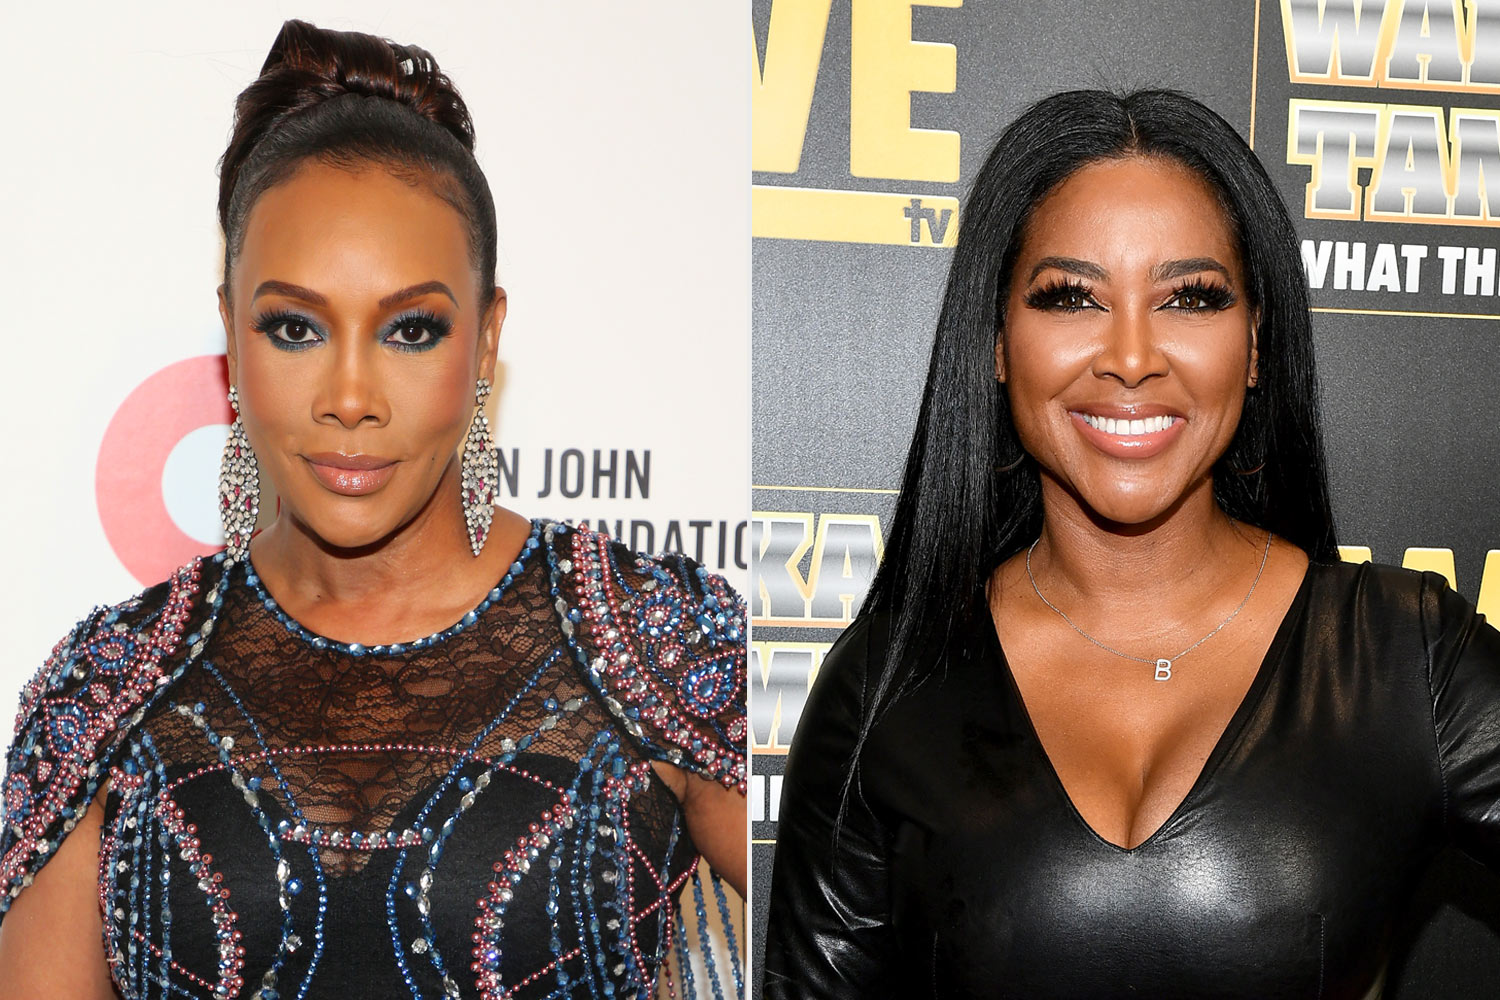 Vivica A Fox and Kenya Moore